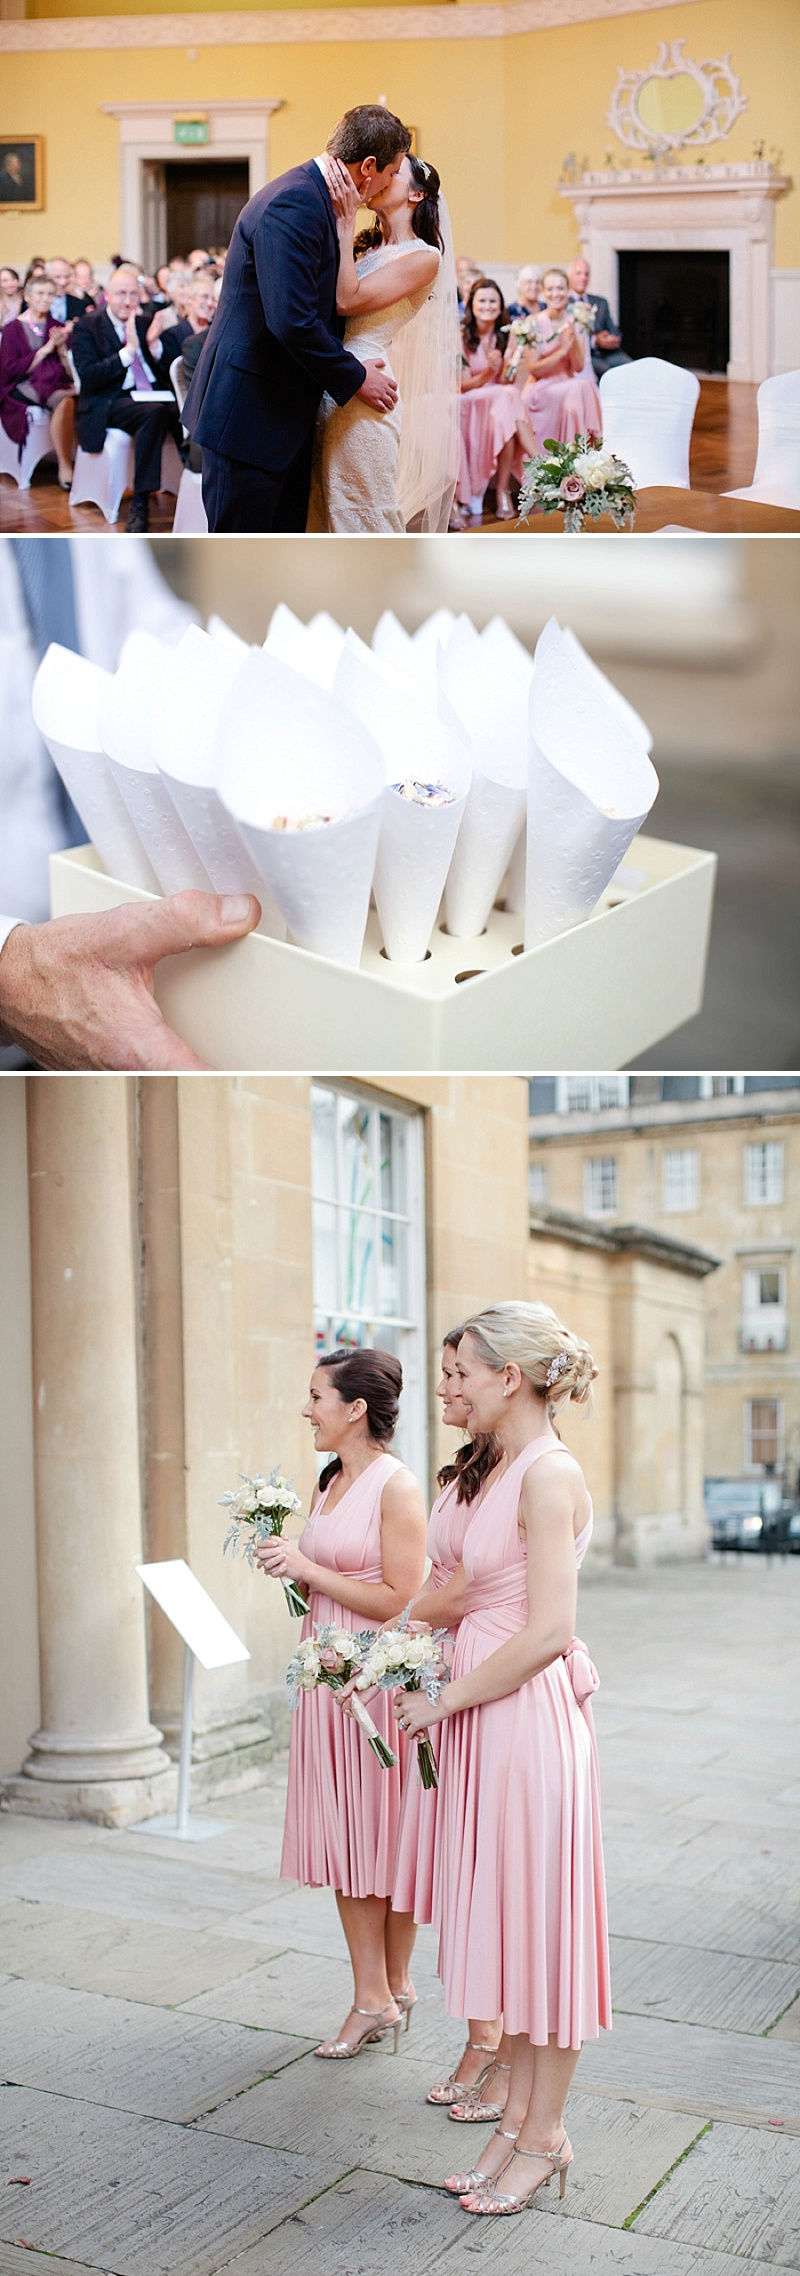 An Elegant Vintage Inspired Wedding At The Assembly Rooms Bath With Bride In Baroque By Suzanne Neville And Bridesmaids In Pink TwoBirds Gowns With Flowers From Flowers By Passion And Images From Helen Cawte Photography 5